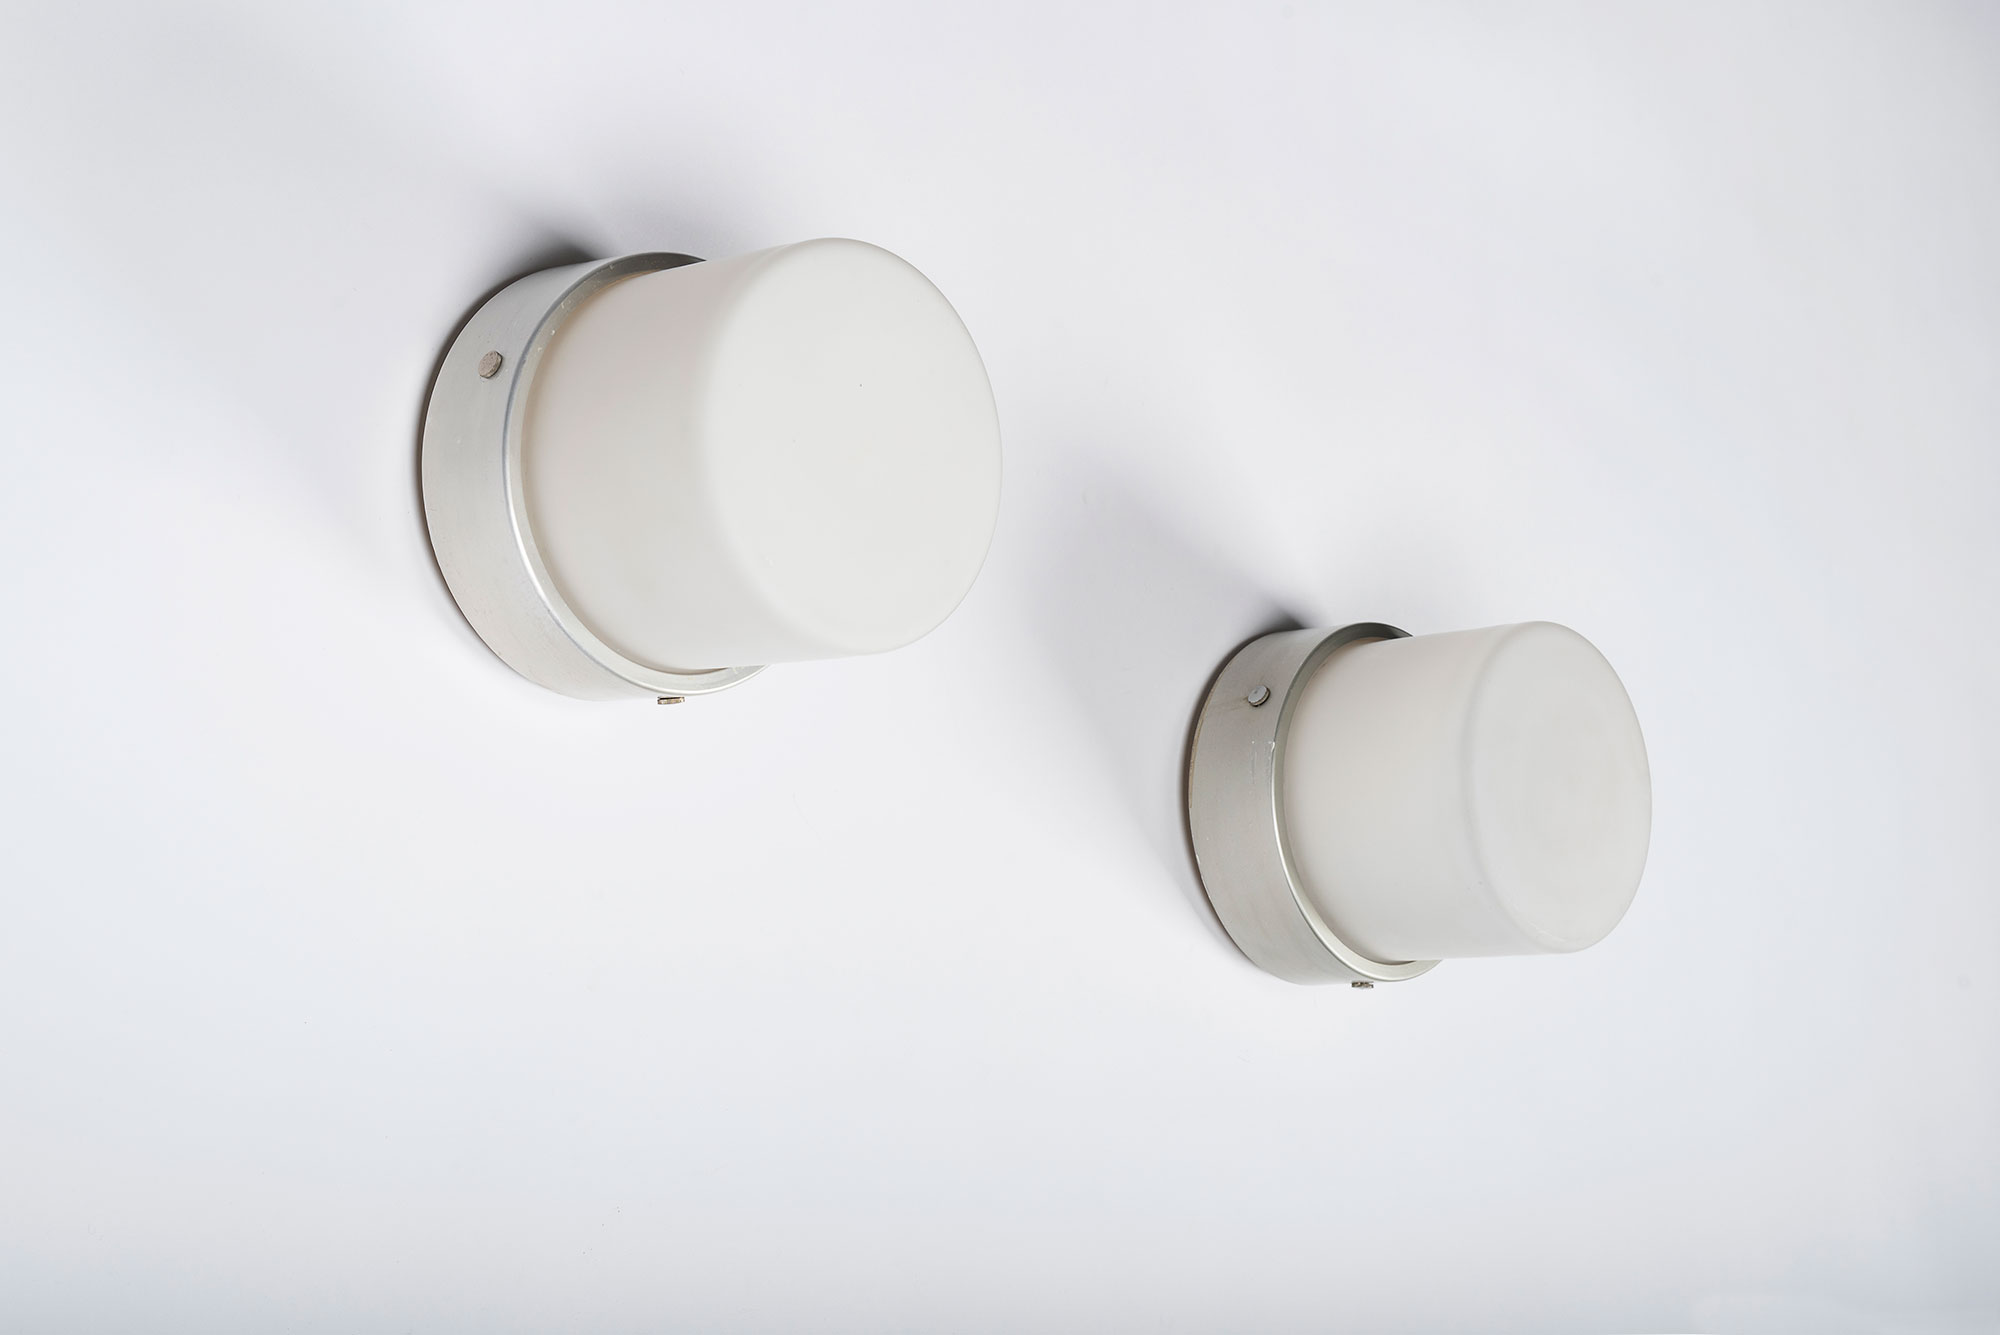 Gino Sarfatti  |   Wall or ceiling light, mod. 3030